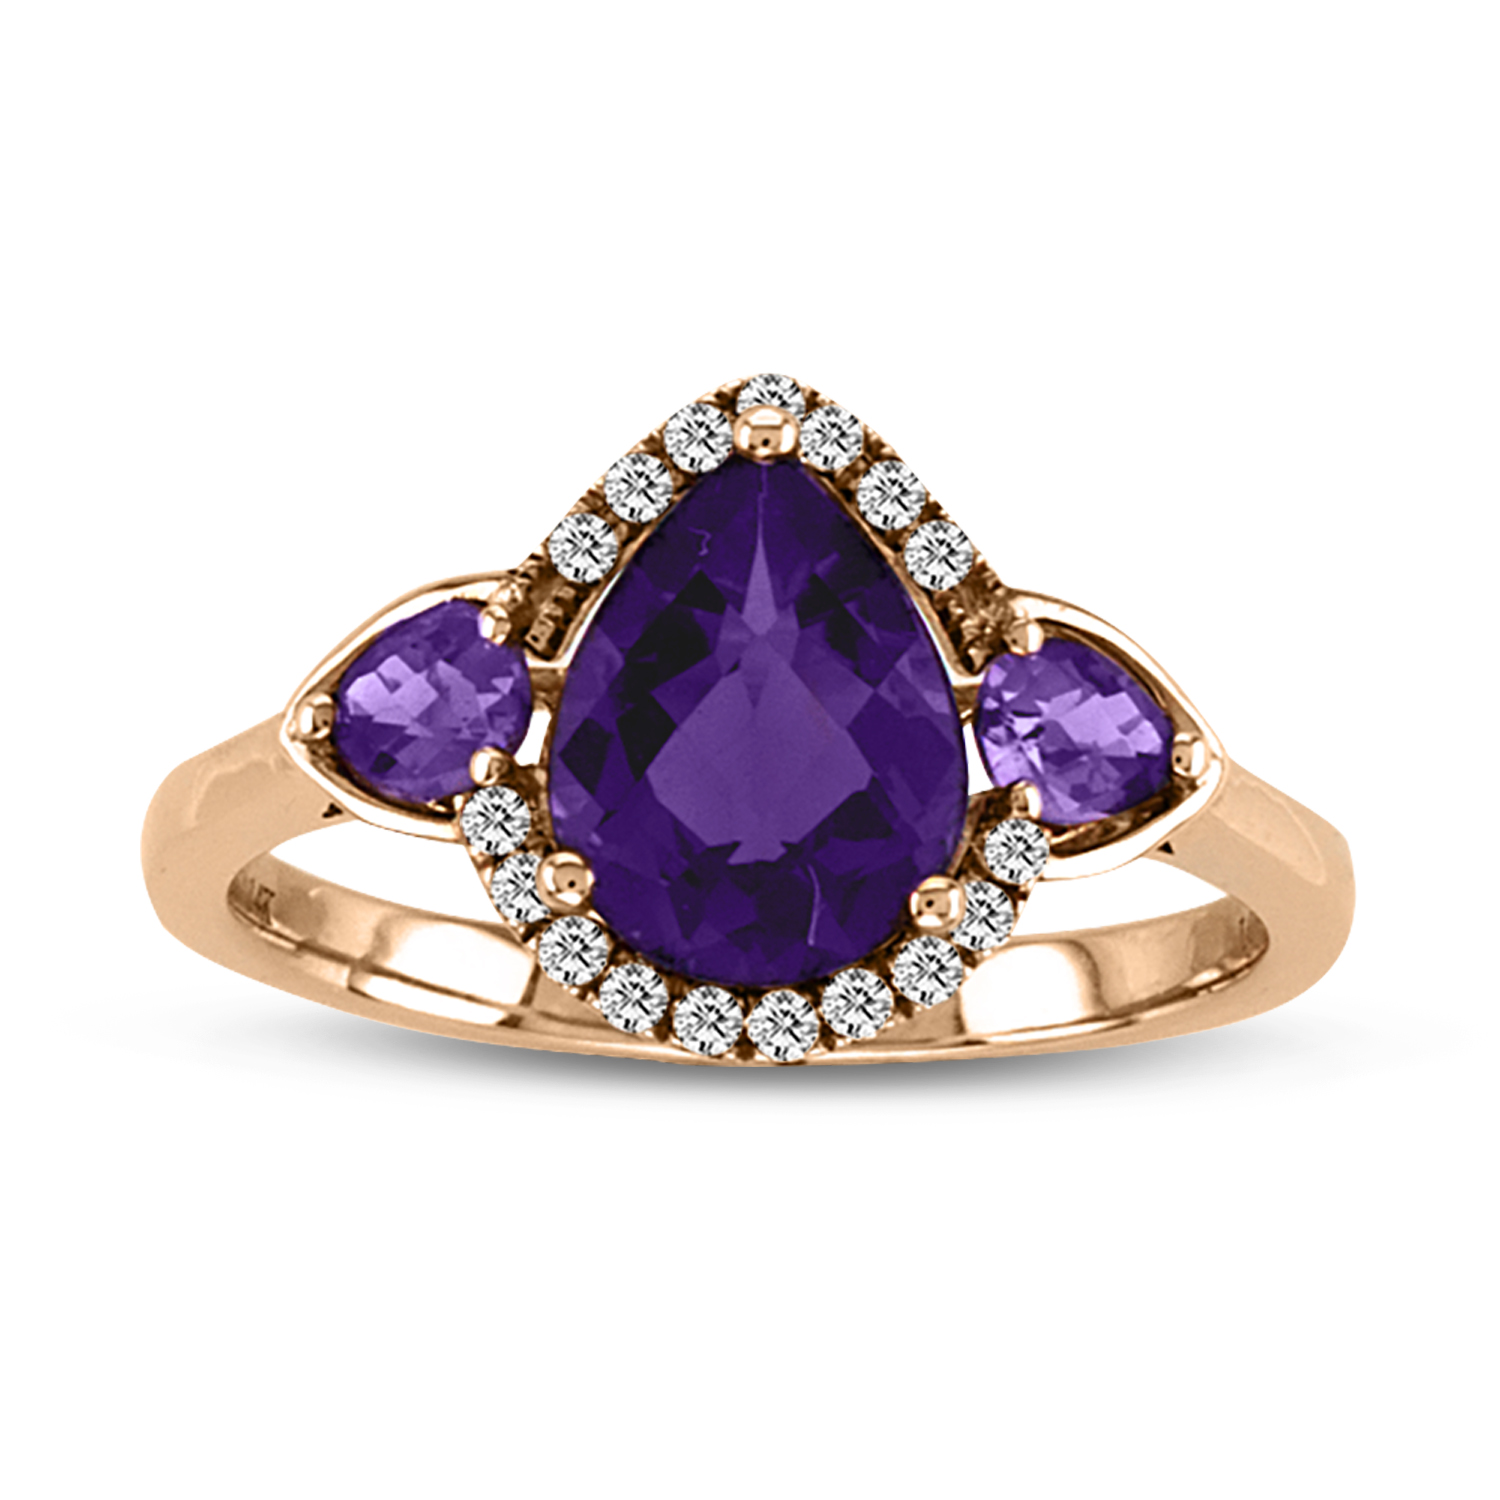 View Diamond and Amethyst Fashion Ring in 14k Rose Gold